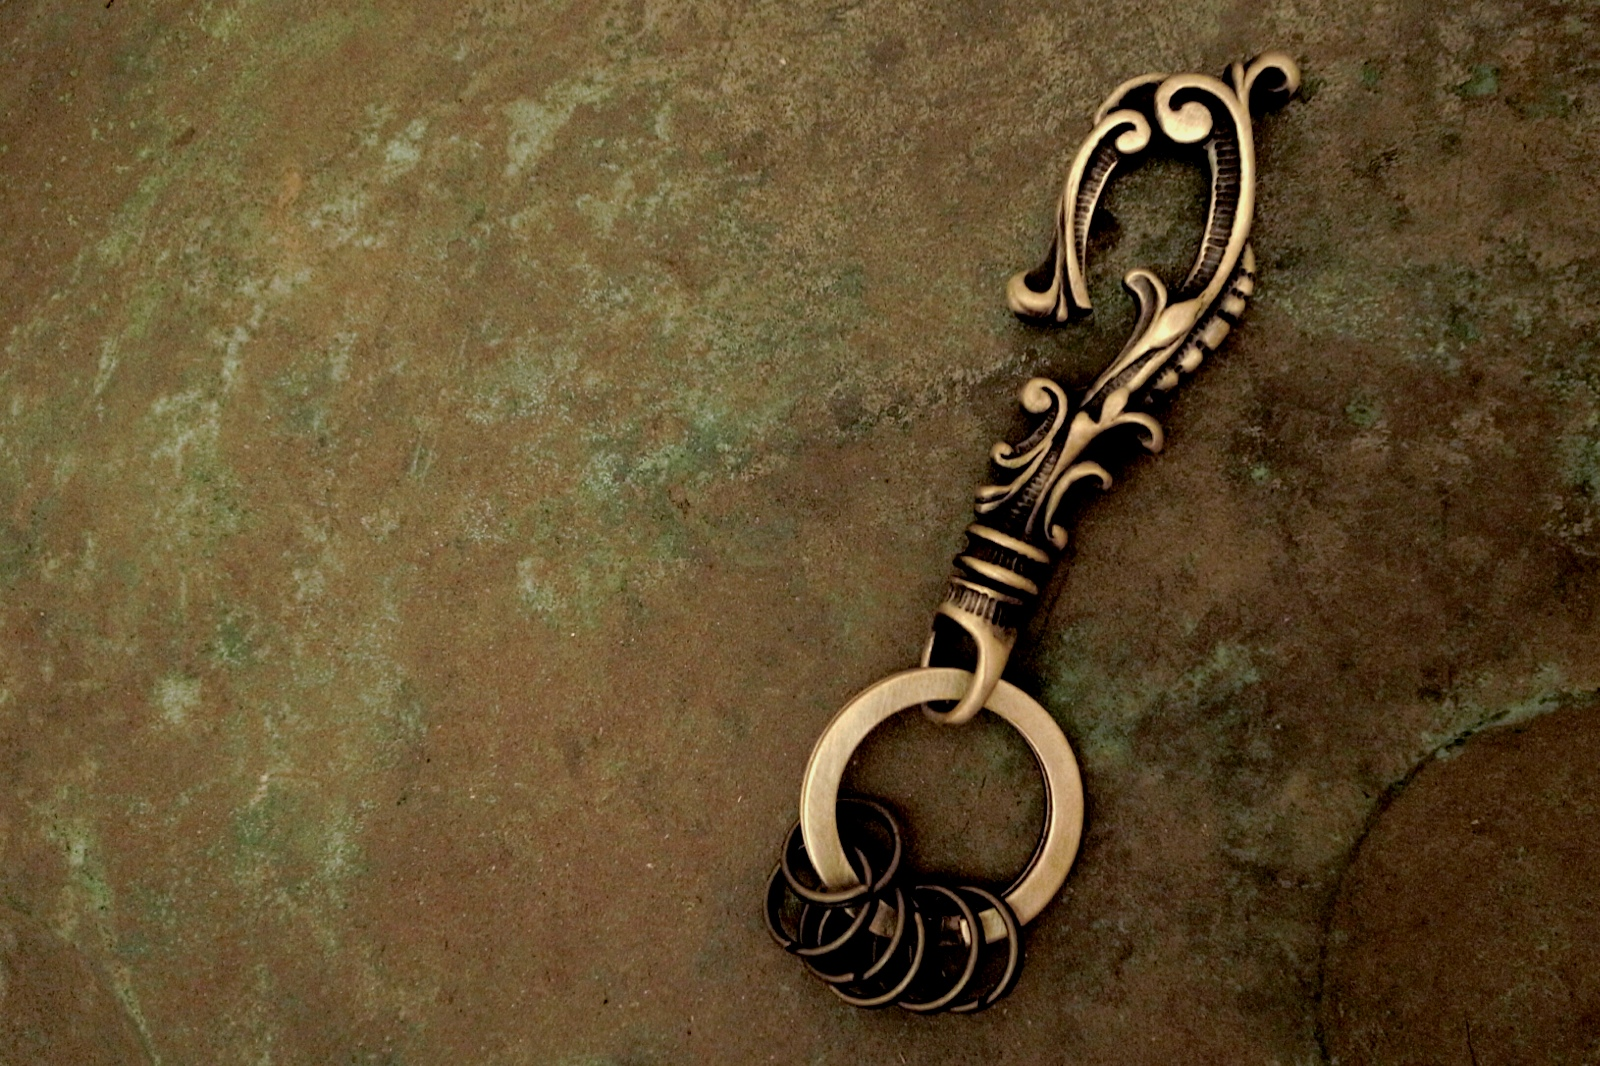 ブラス(真鍮)製【Antique Hook Keyholder】